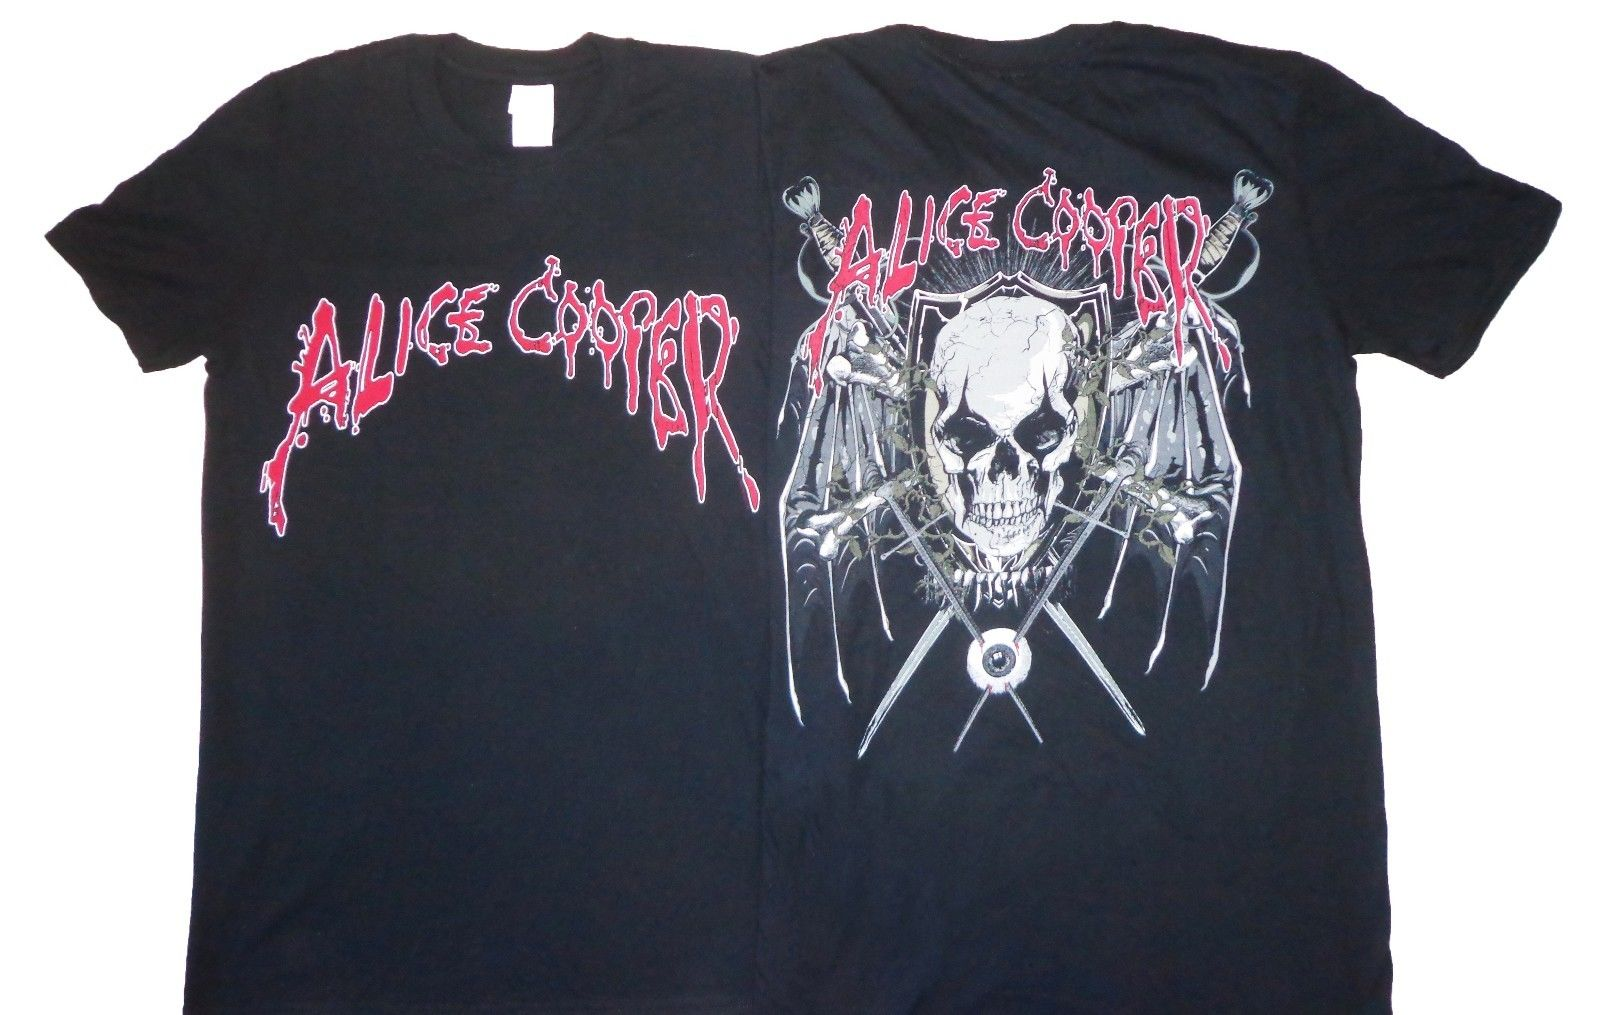 Shirt design places